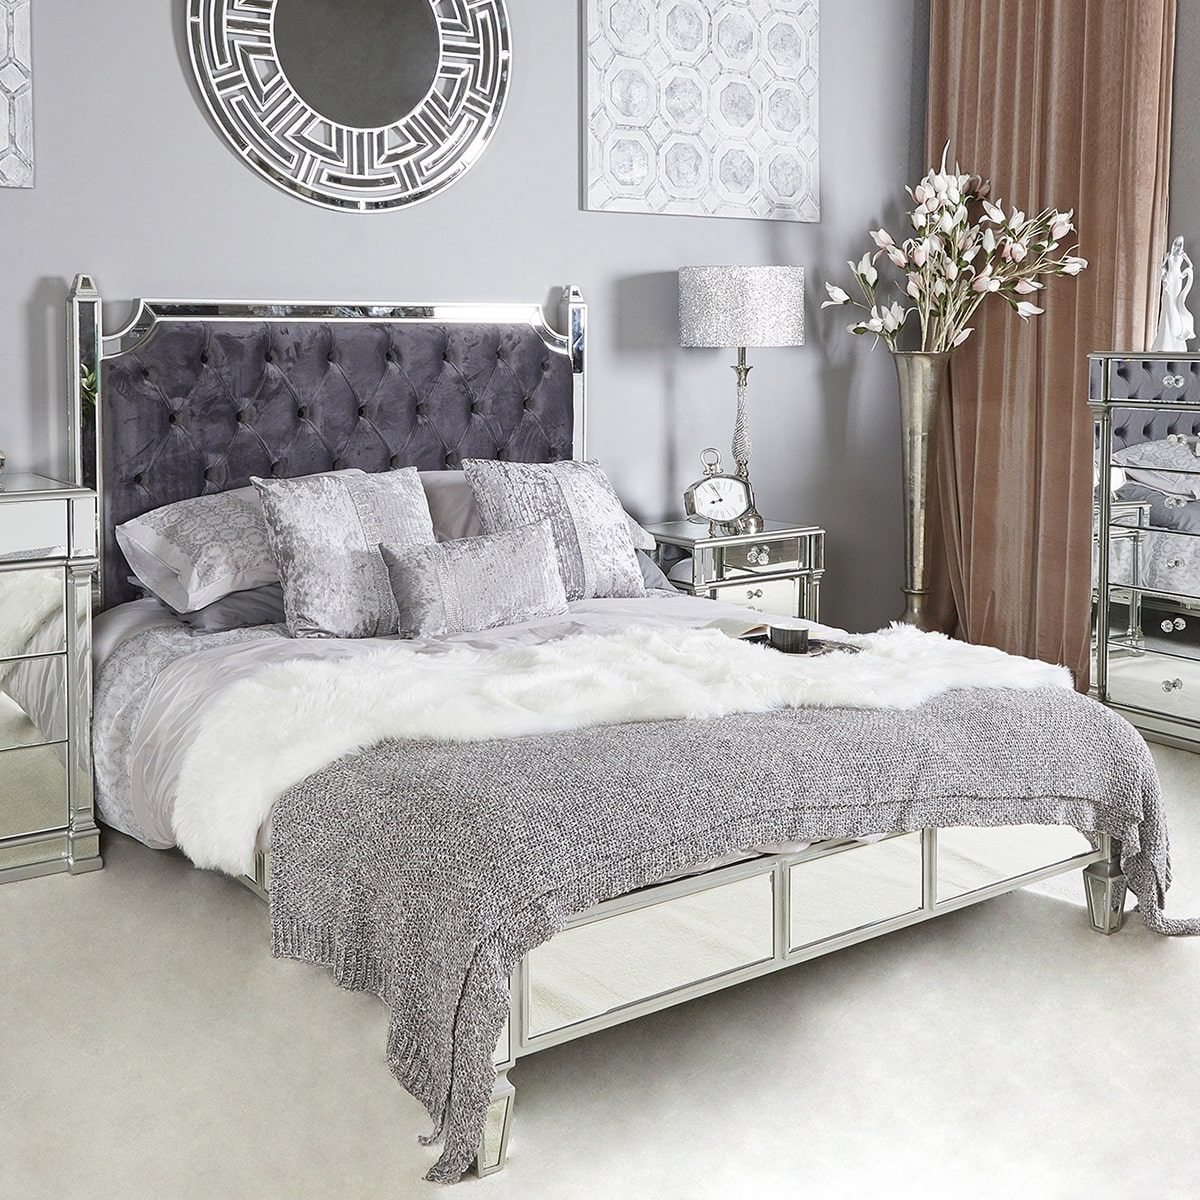 Athena Silver Bed King Size